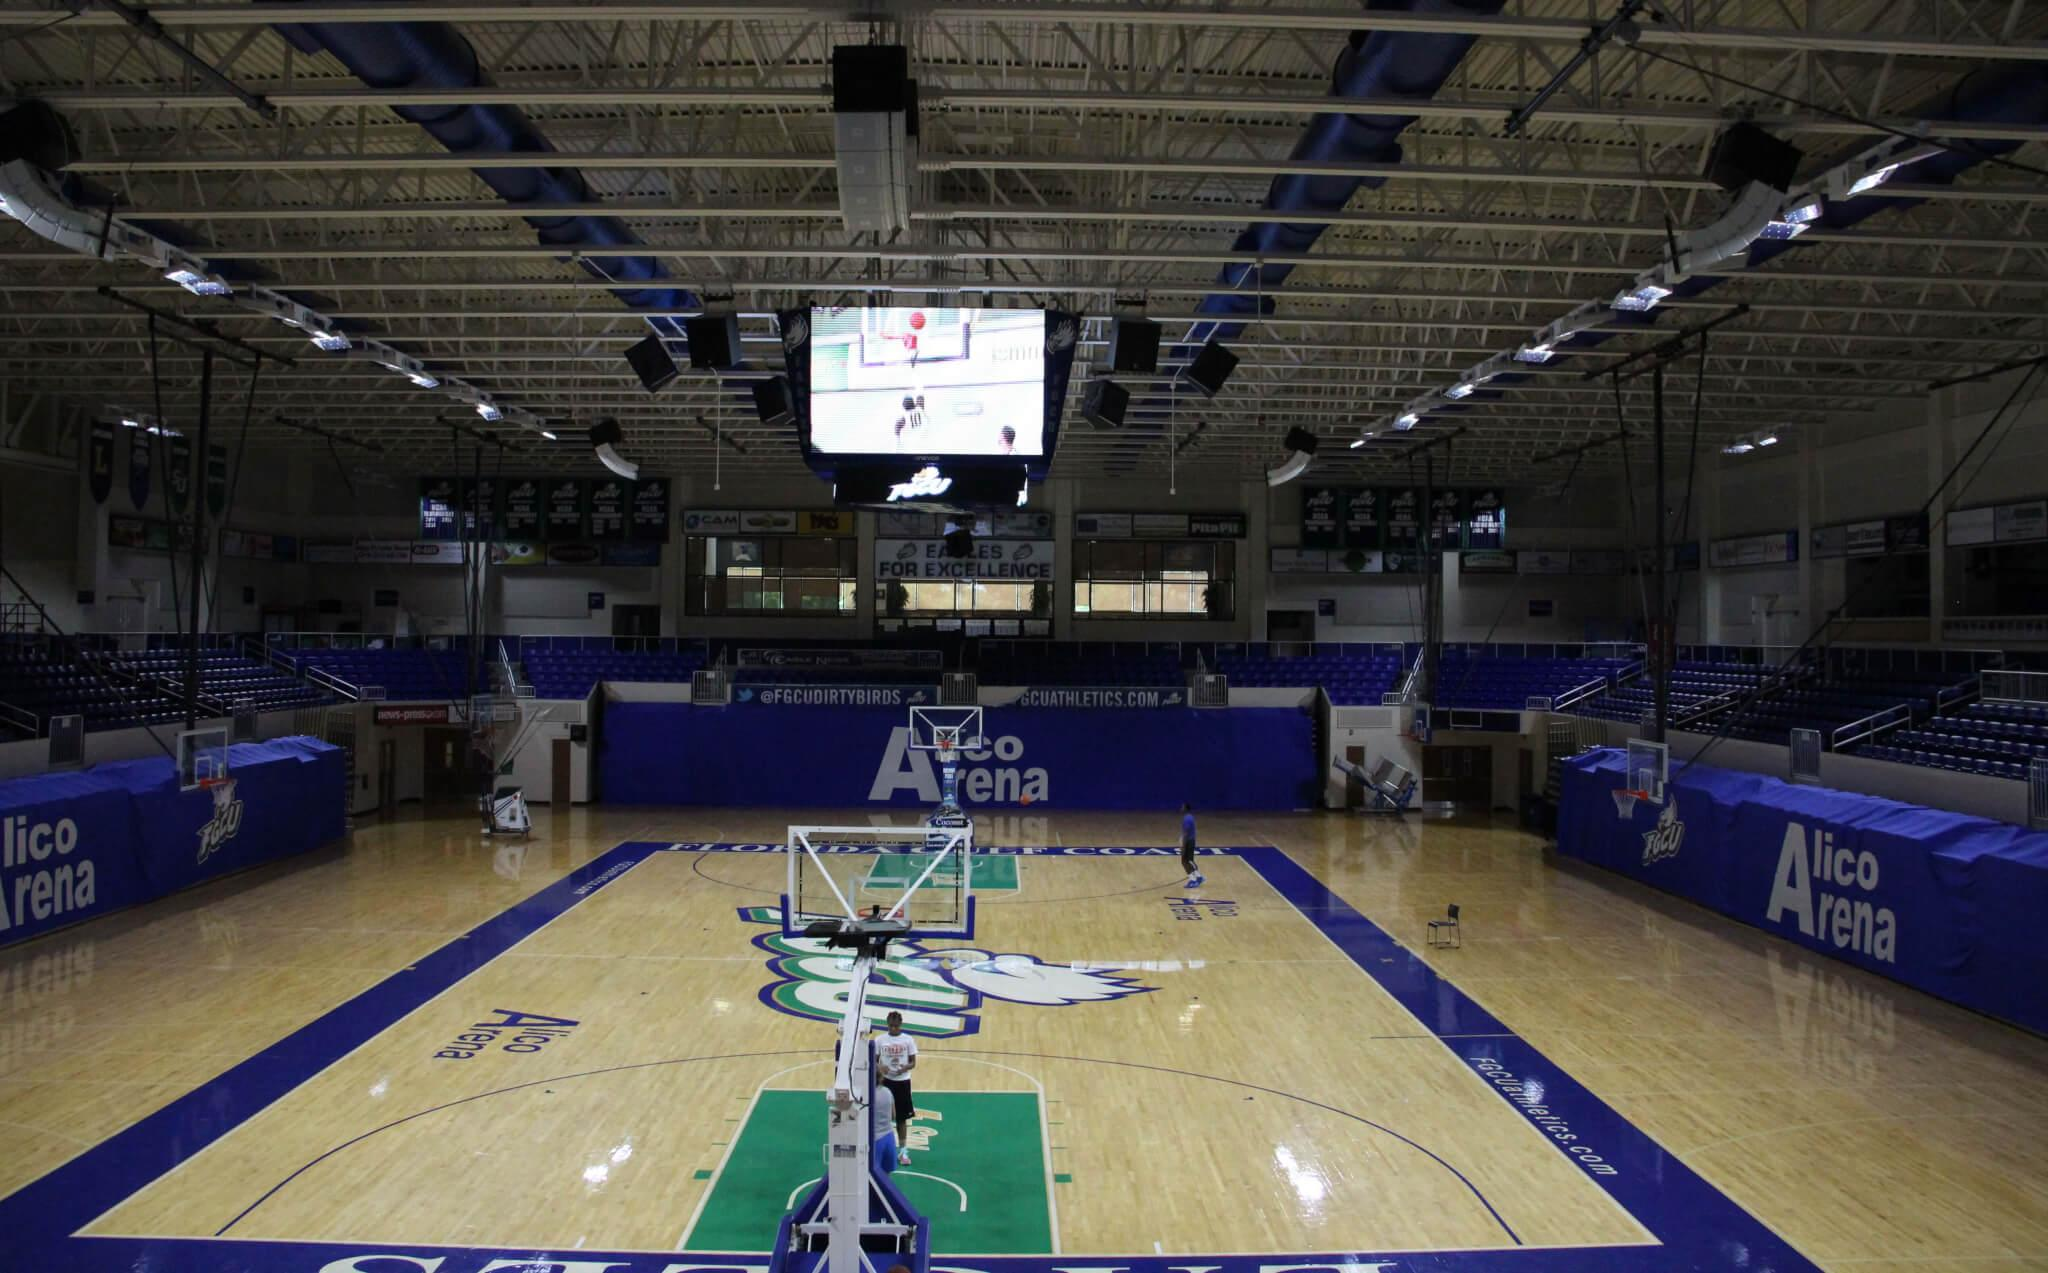 New scoreboard lights up Alico Arena